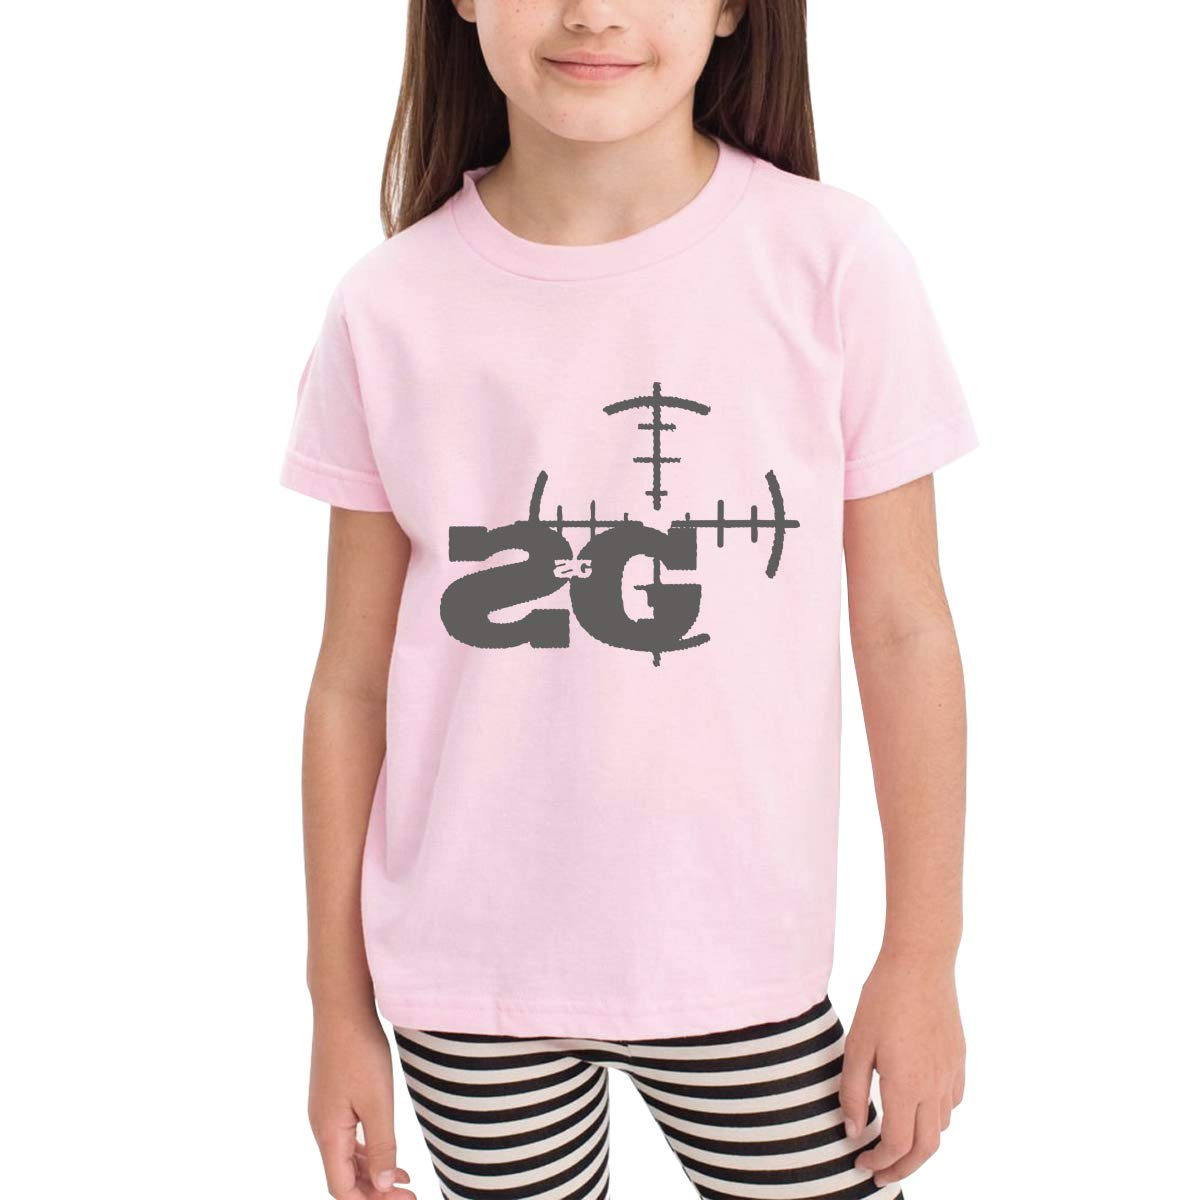 Onlybabycare Sniper Gang 2G 100/% Cotton Toddler Baby Boys Girls Kids Short Sleeve T Shirt Top Tee Clothes 2-6 T